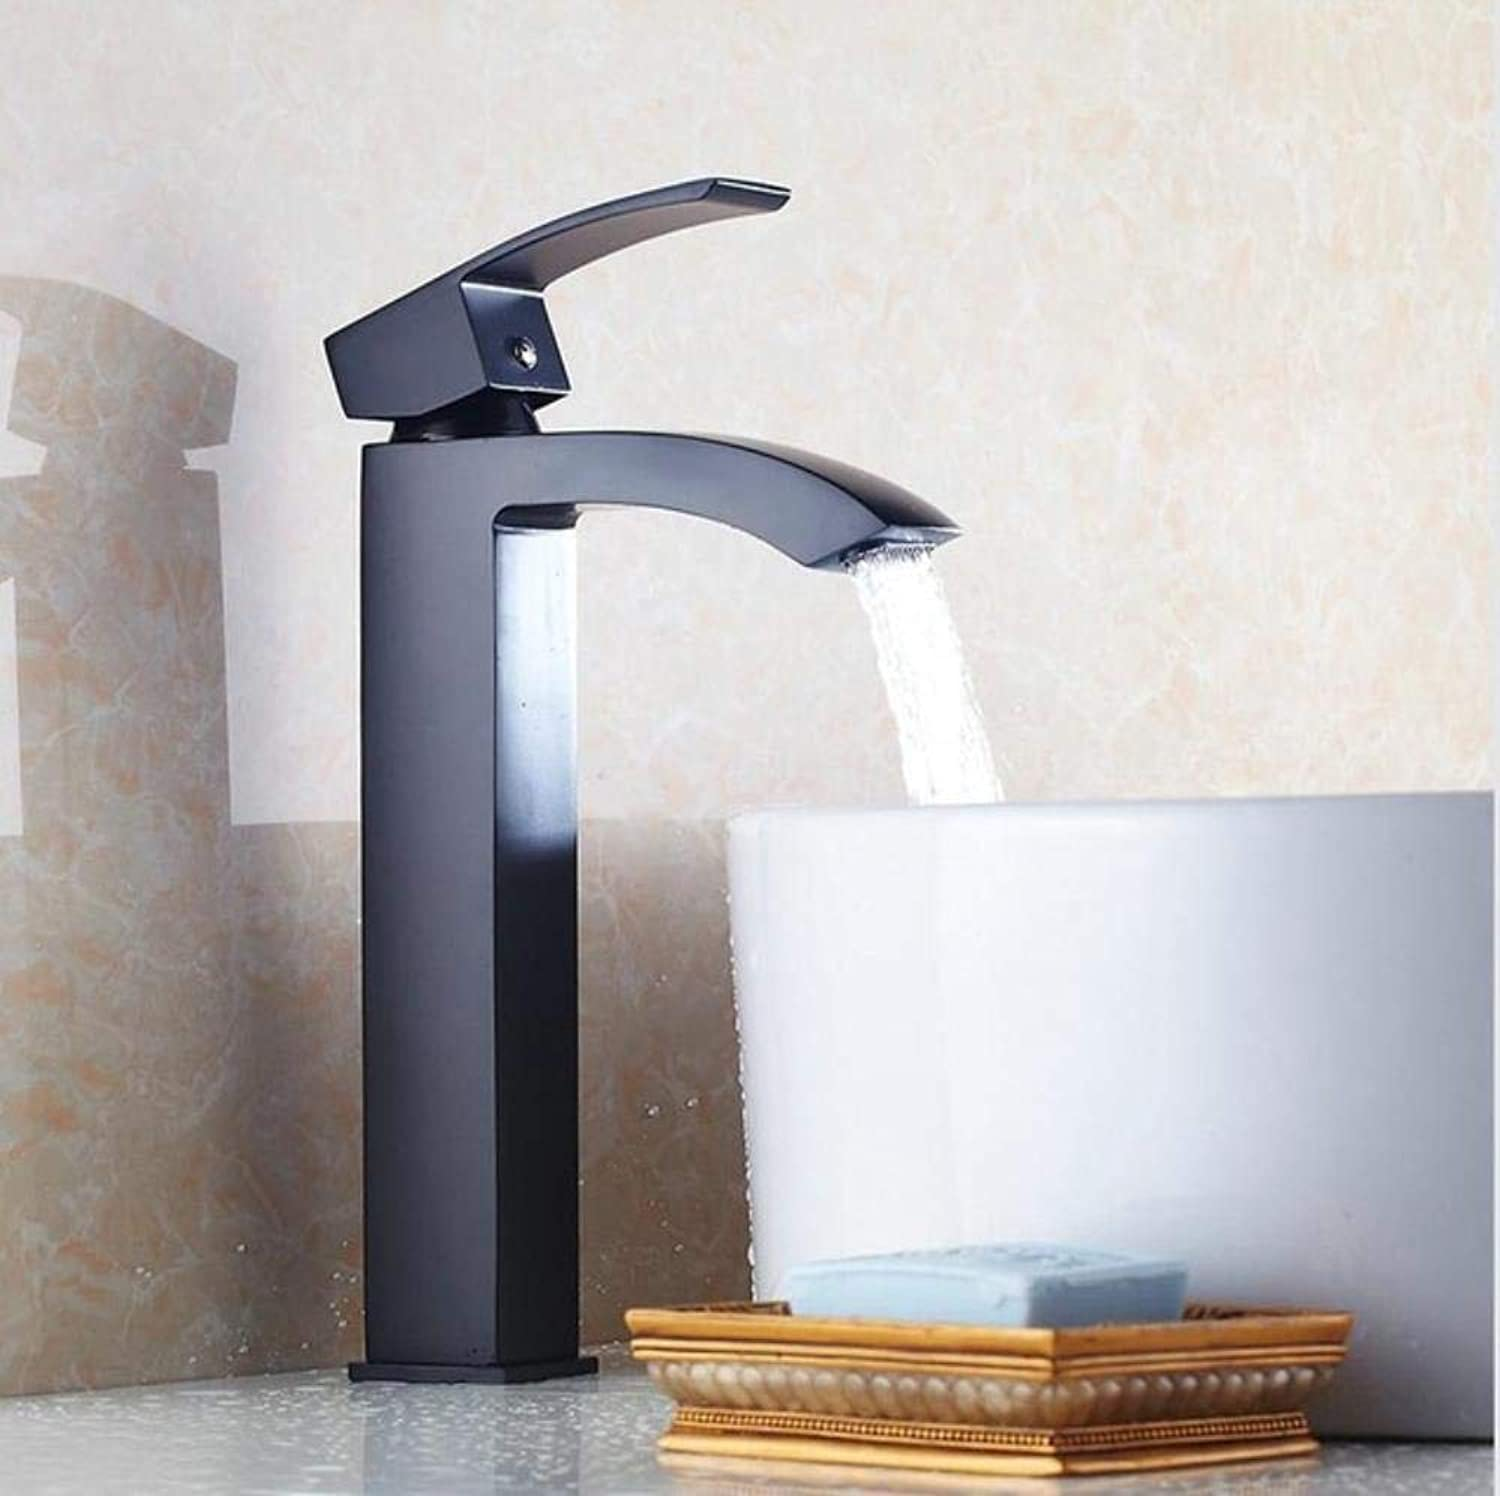 Kai&Guo Tall Basin Faucet Waterfall Bathroom Faucet Single handle Basin Mixer Tap Bath Chrome Black Faucet Brass Sink Water Crane,black tall